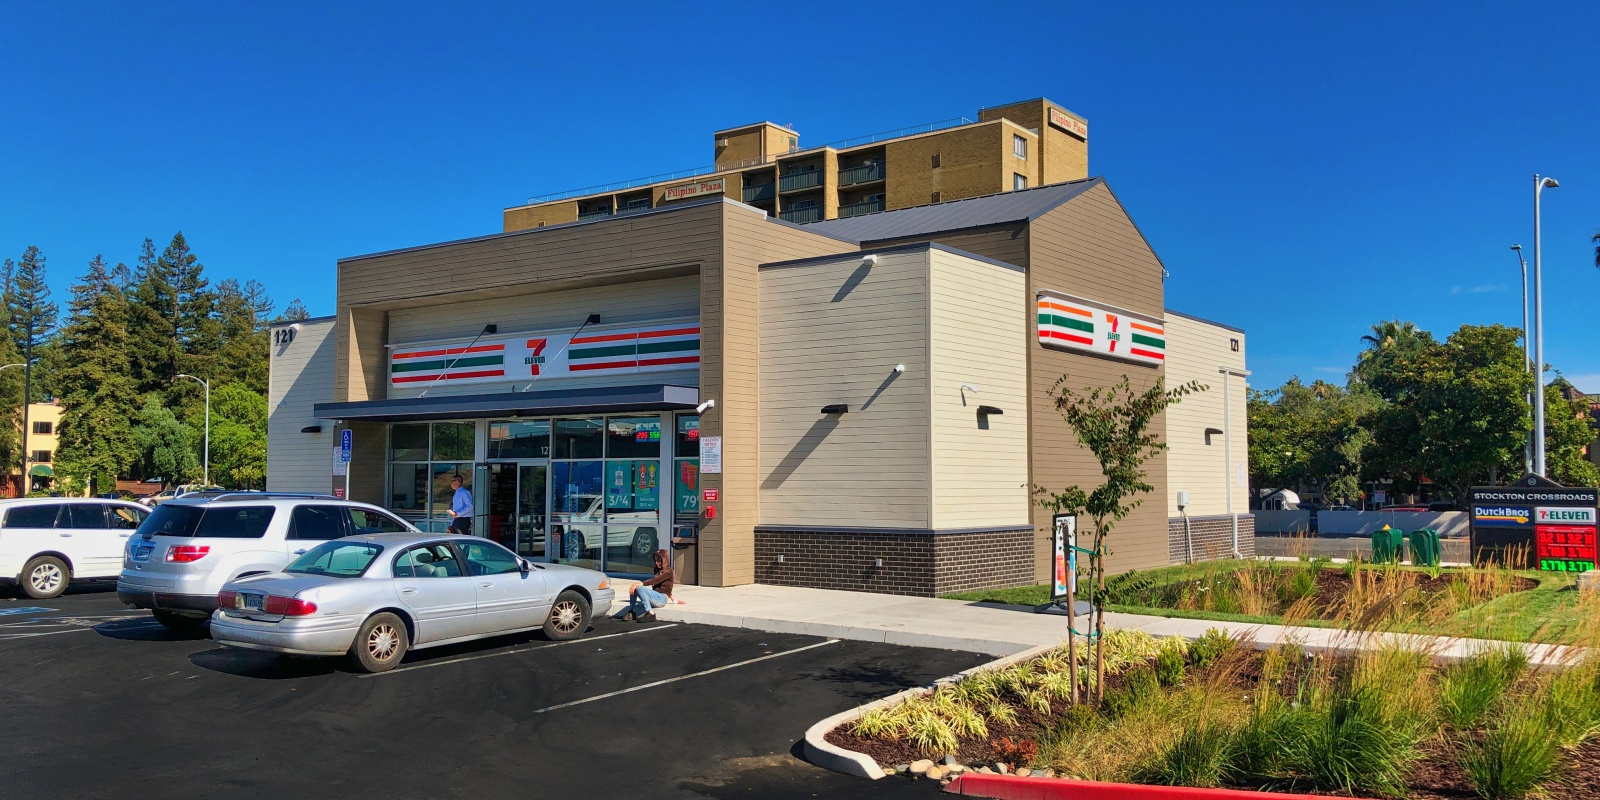 121 S Center Street, Stockton, CA, ,Retail,Sold/Leased,121 S Center Street, Stockton, CA,1276